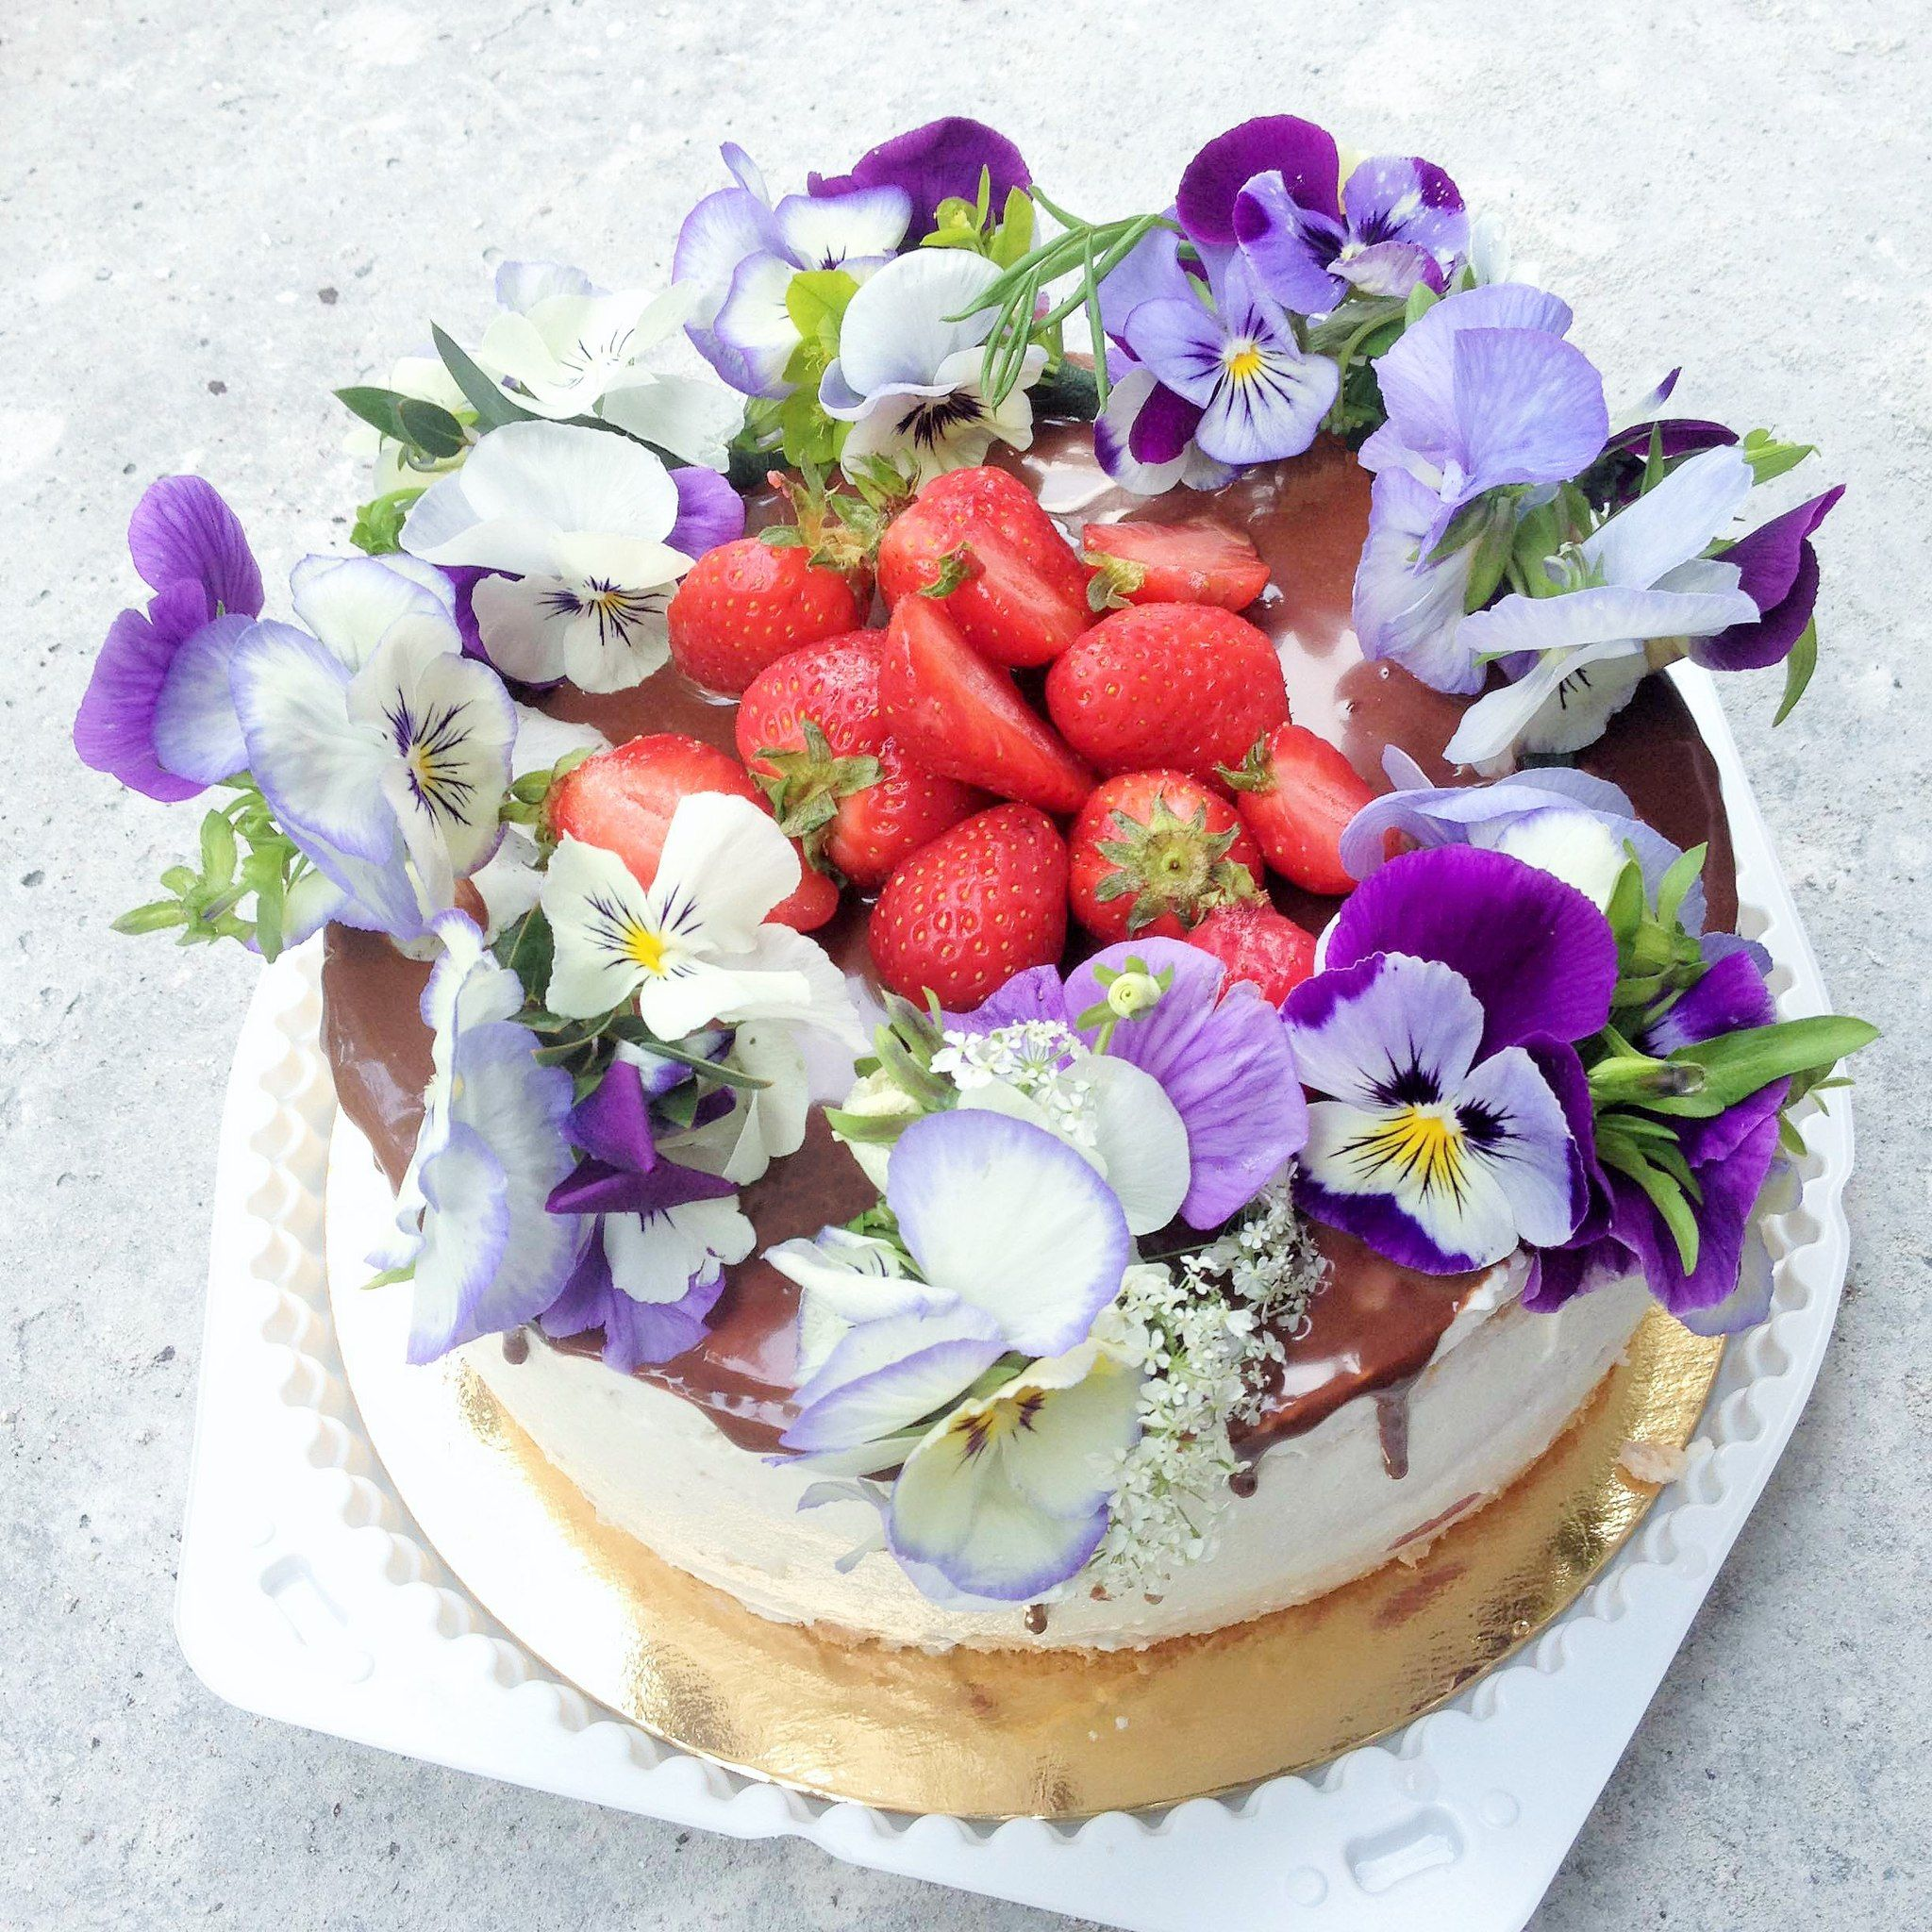 HOW TO DECORATE YOUR CAKE WITH LIVING FLOWERS 5 VALUED TIPS FOR DILETTANTE https://www.facebook.com/flowersella.shop/